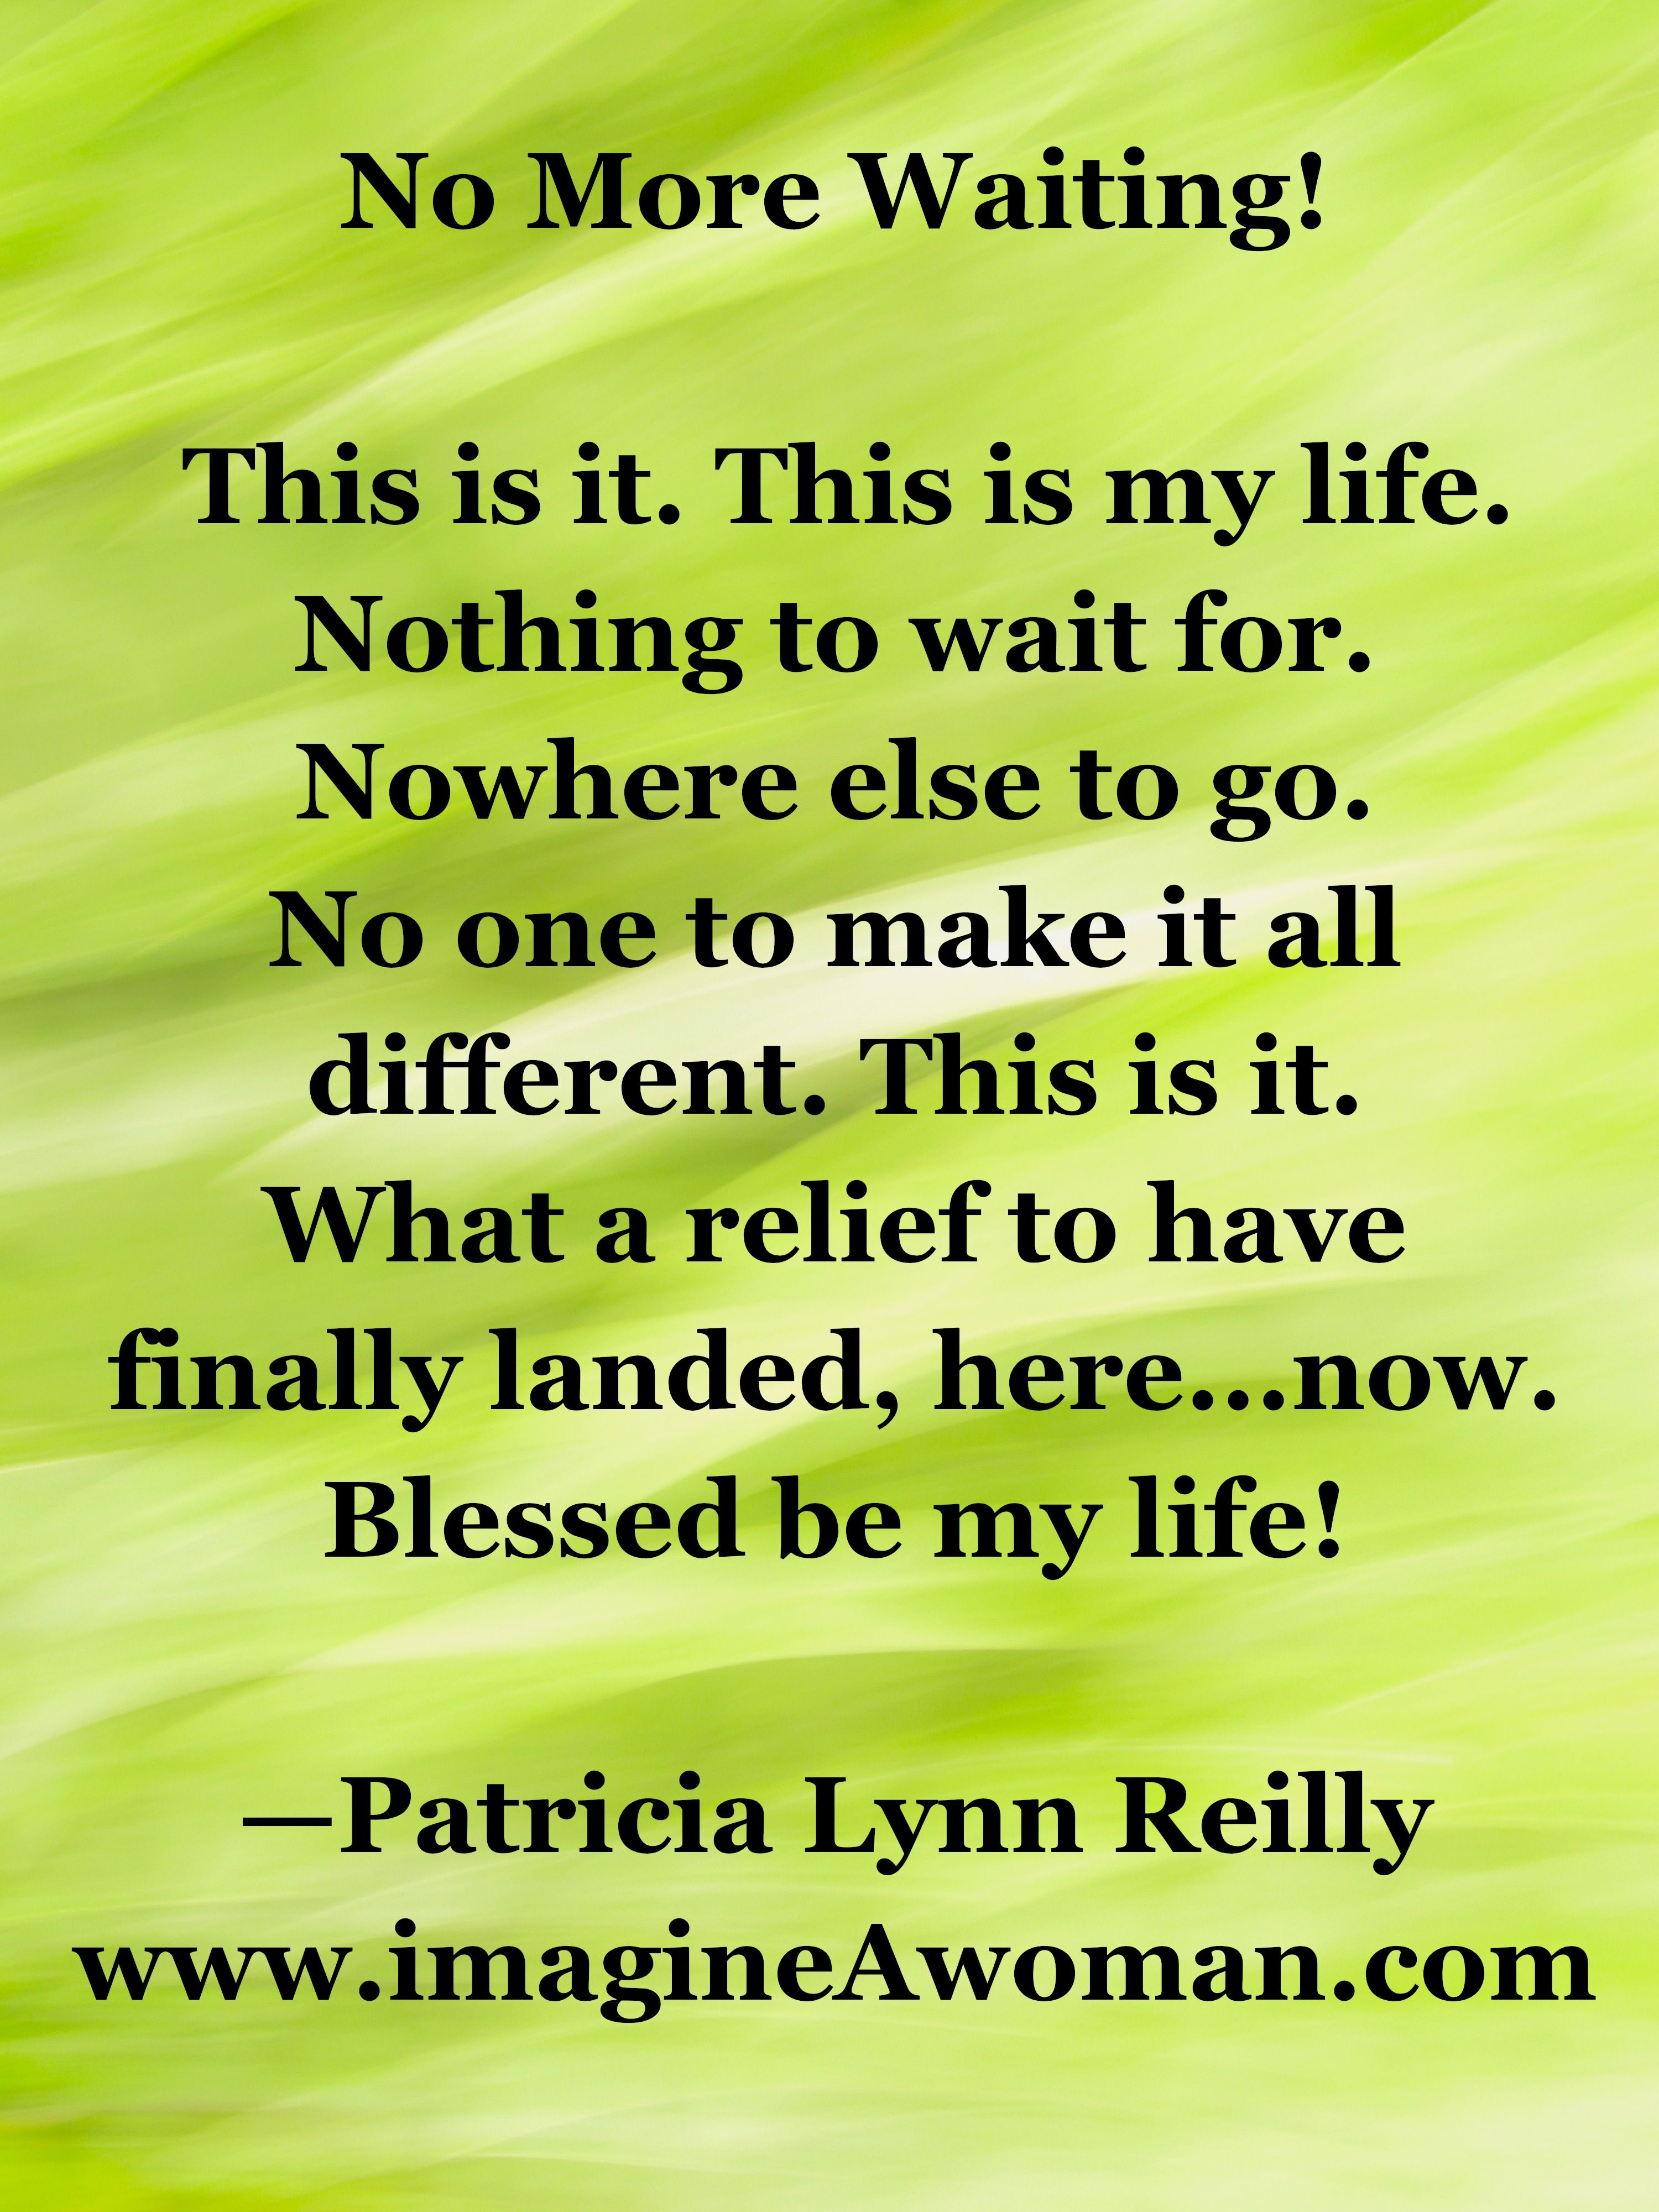 Patricia Lynn Reilly - Blessed Be My Life! | Inspiration for